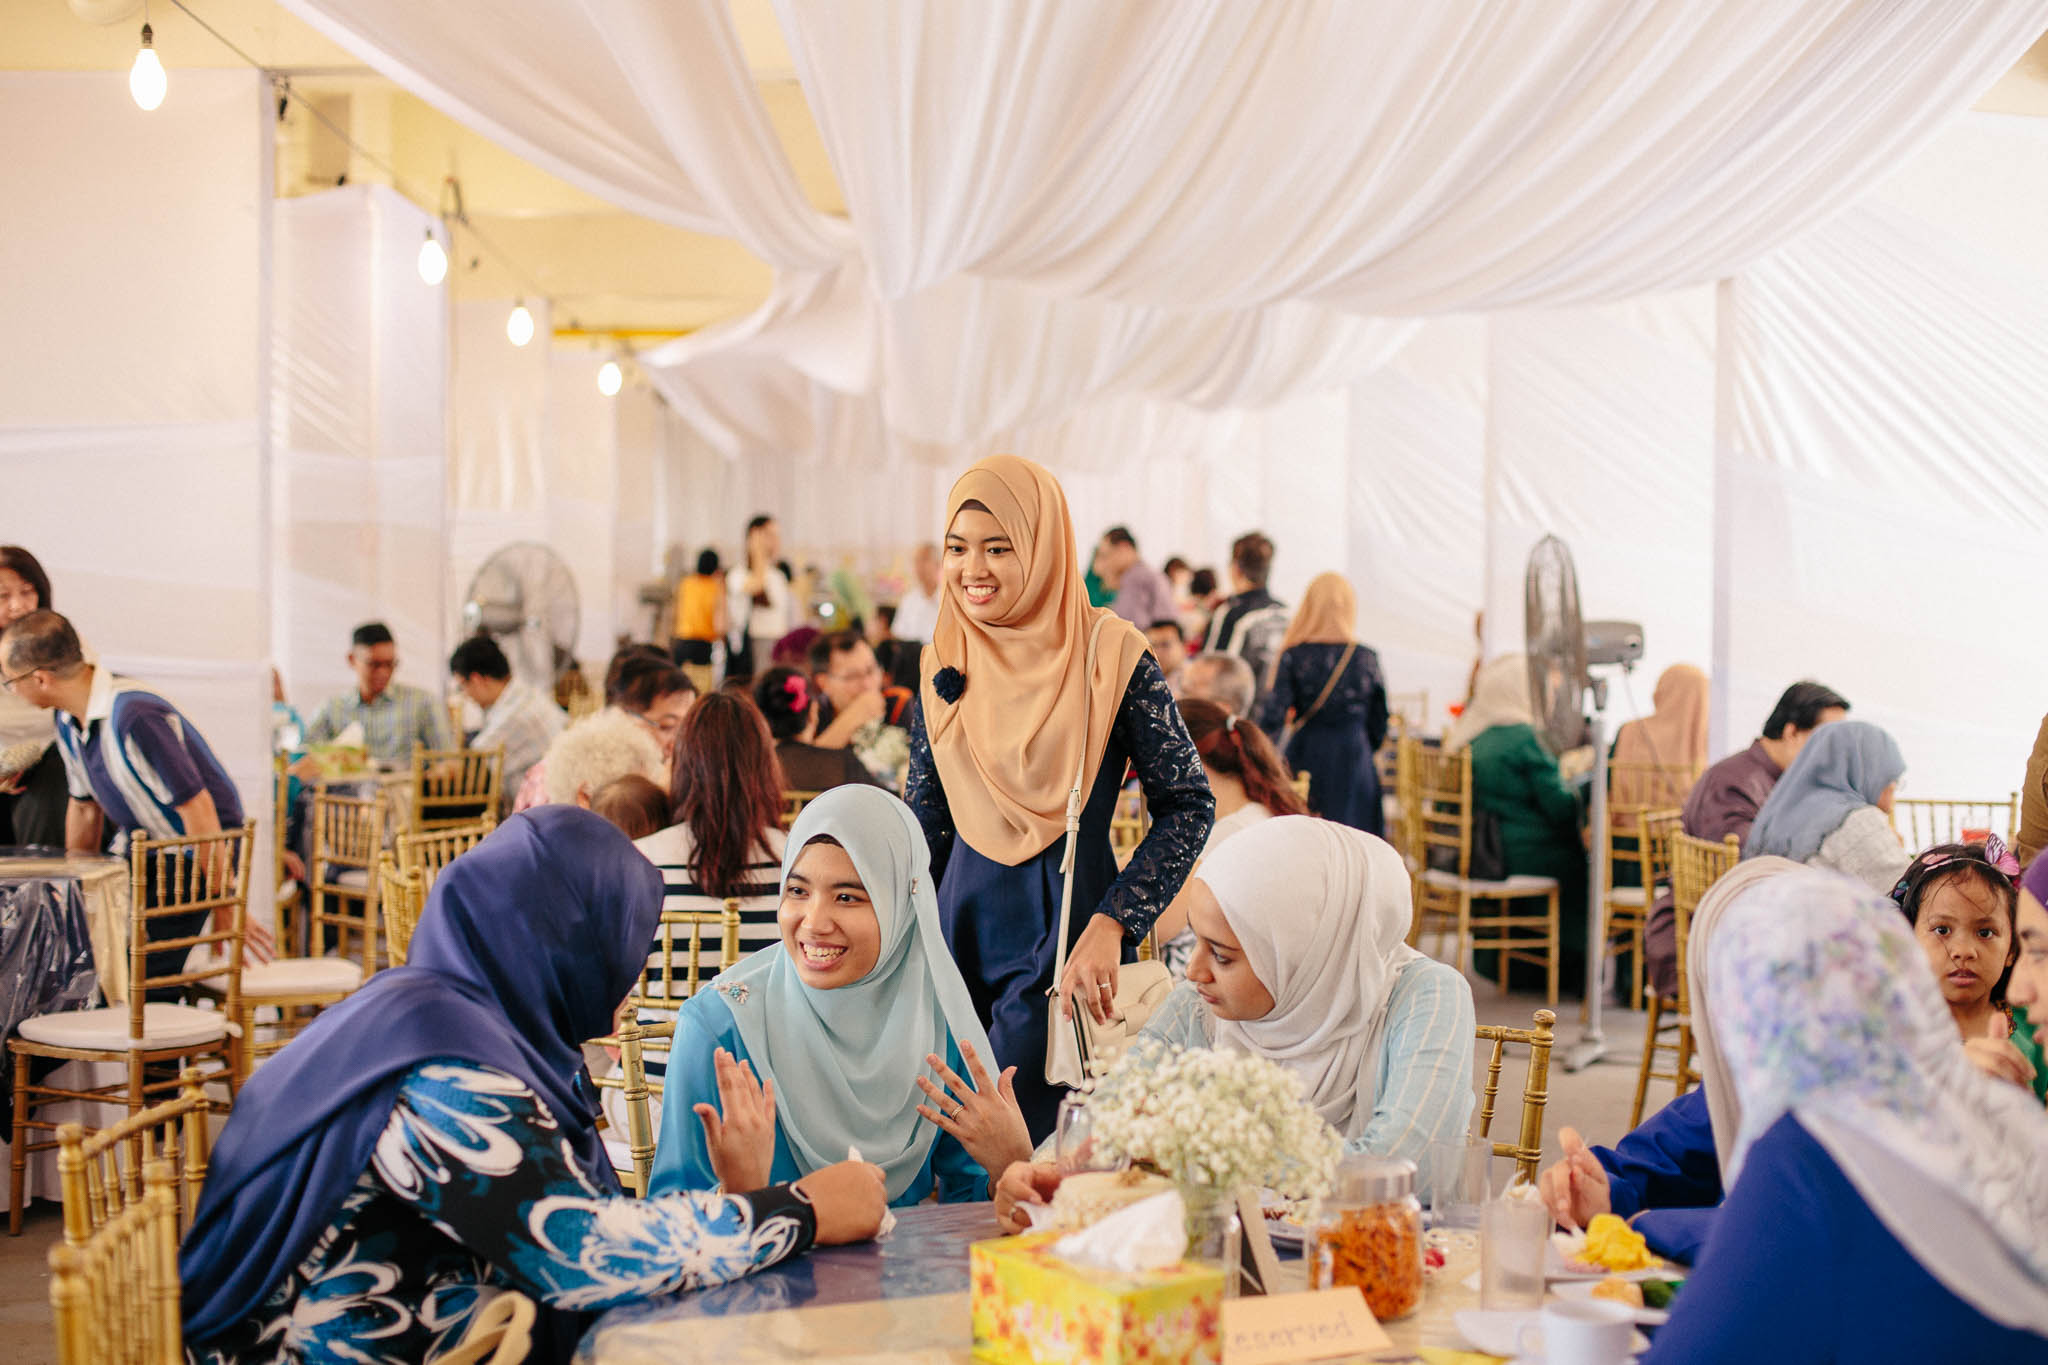 singapore-wedding-photographer-we-made-these-2016-selects-033.jpg